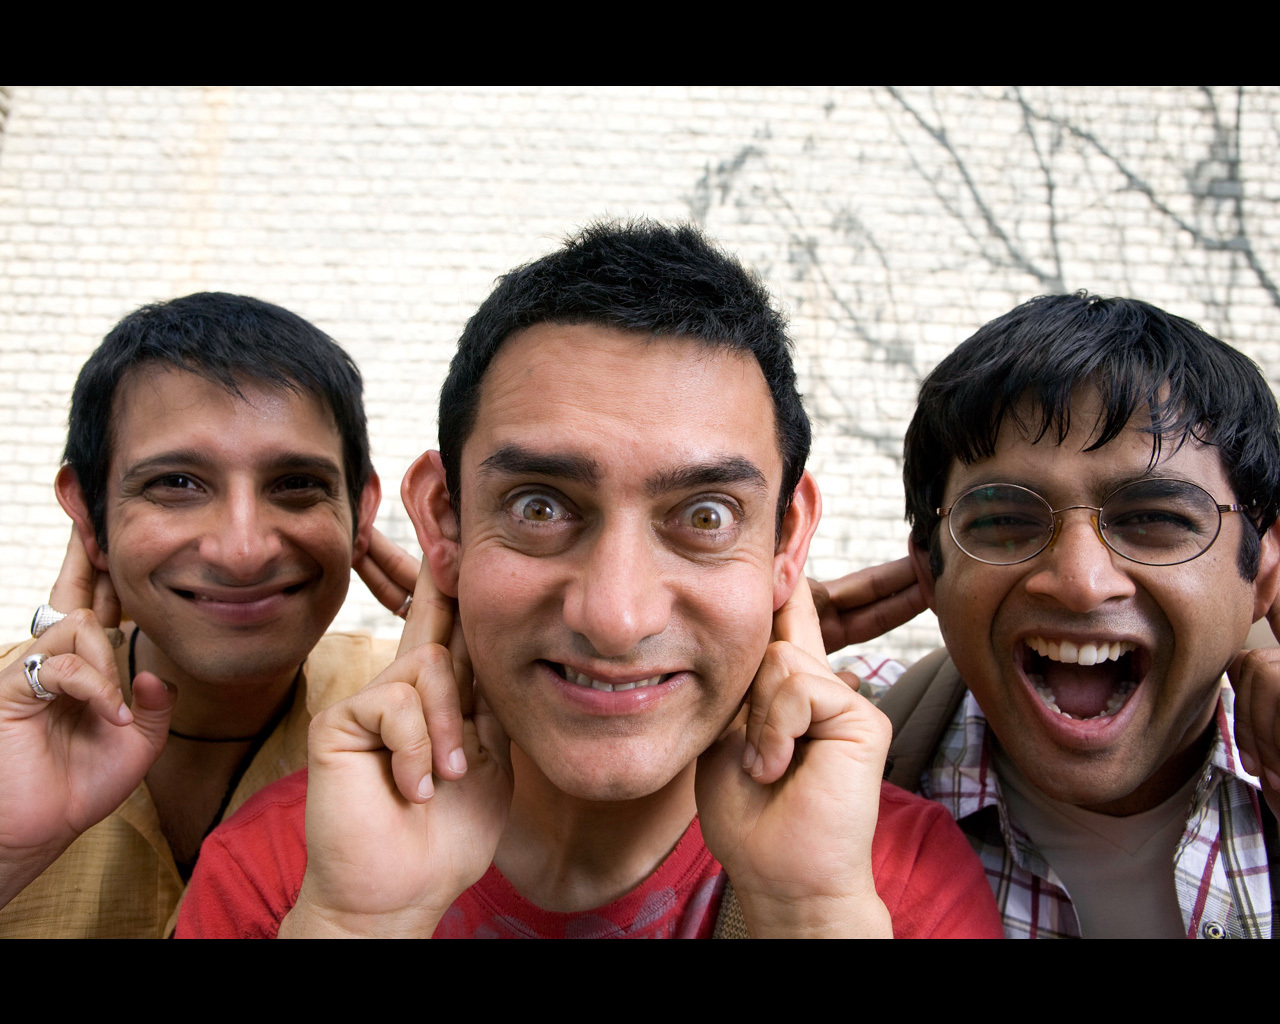 3 idiot review paper 3 idiots takes a while to lay out its game plan but pays off emotionally in its second half july 6, 2010 | full review audience reviews for three idiots.